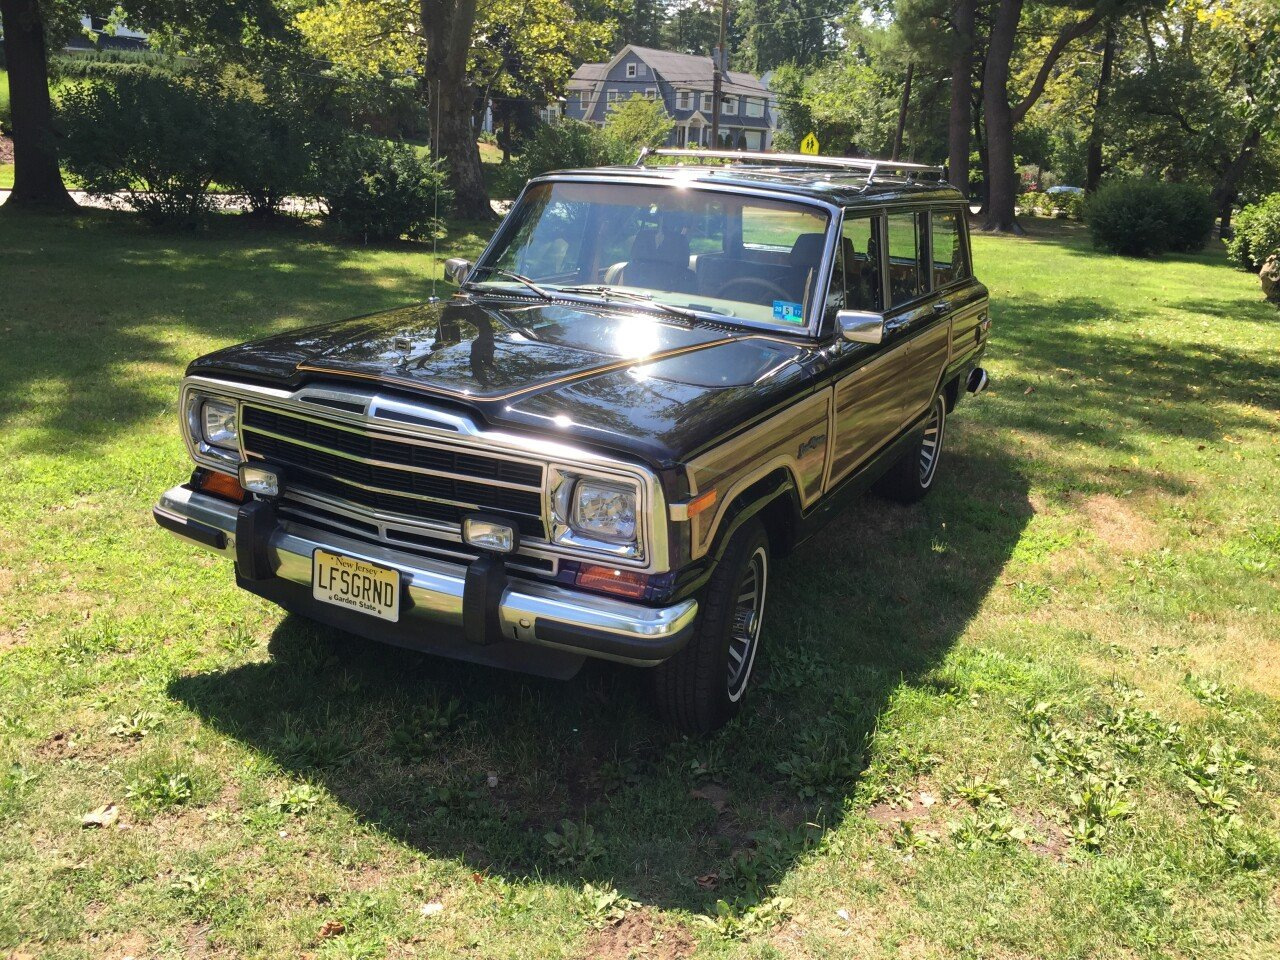 Jeep Grand Wagoneer For Sale >> 1988 Jeep Grand Wagoneer For Sale Near Montclair New Jersey 07042